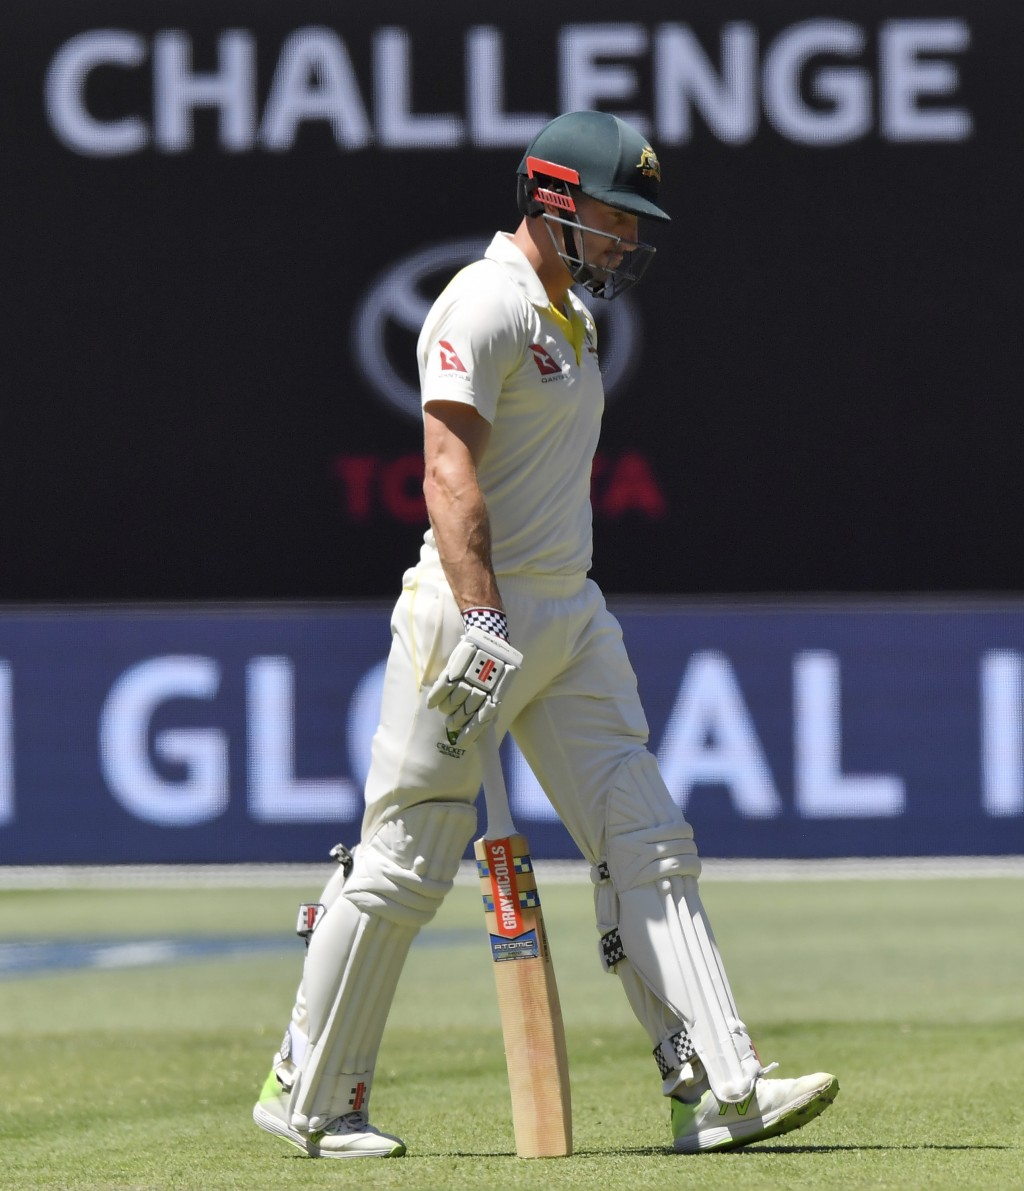 Australia's Shaun Marsh walks off after England's Stuart Broad trapped him LBW for 61 runs during the second day of their Ashes cricket test match in ...